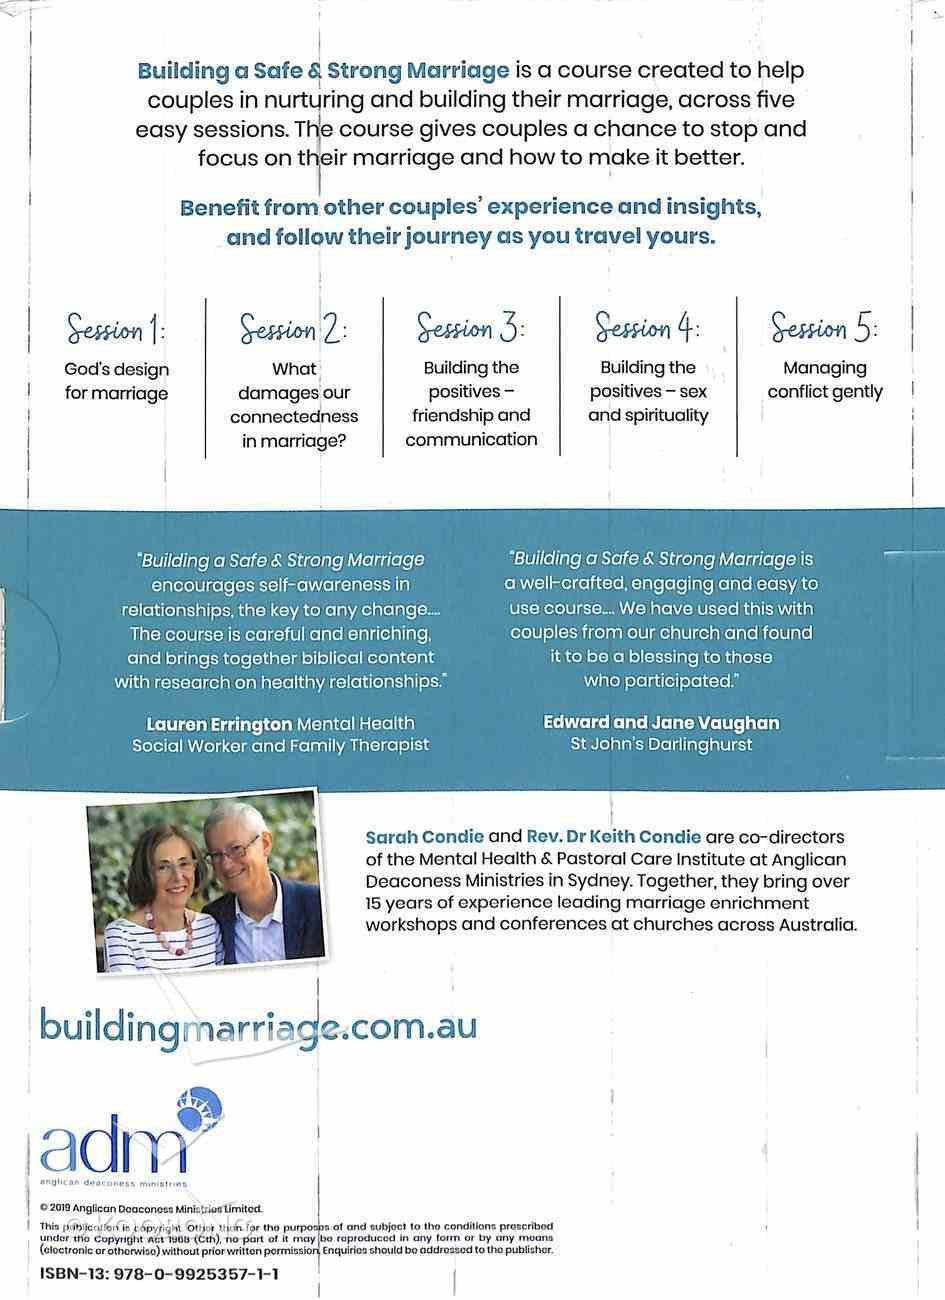 Building a Safe and Strong Marriage DVD: A Five Part Marriage Enrichment Course DVD